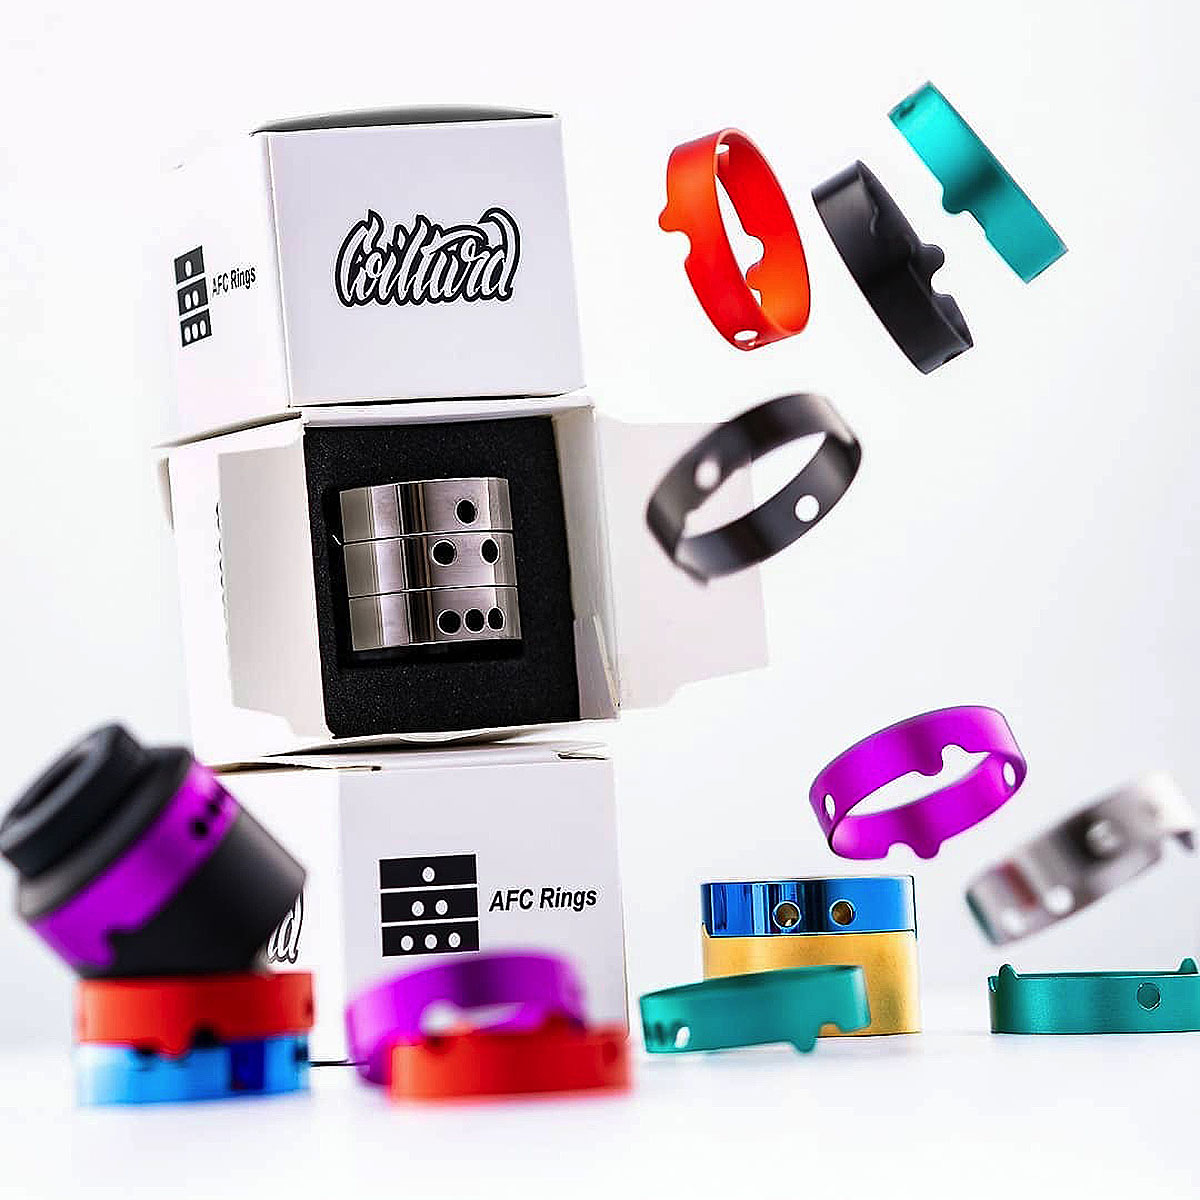 AN RDA FOR VAPING AFC RING SET BY COILTURD